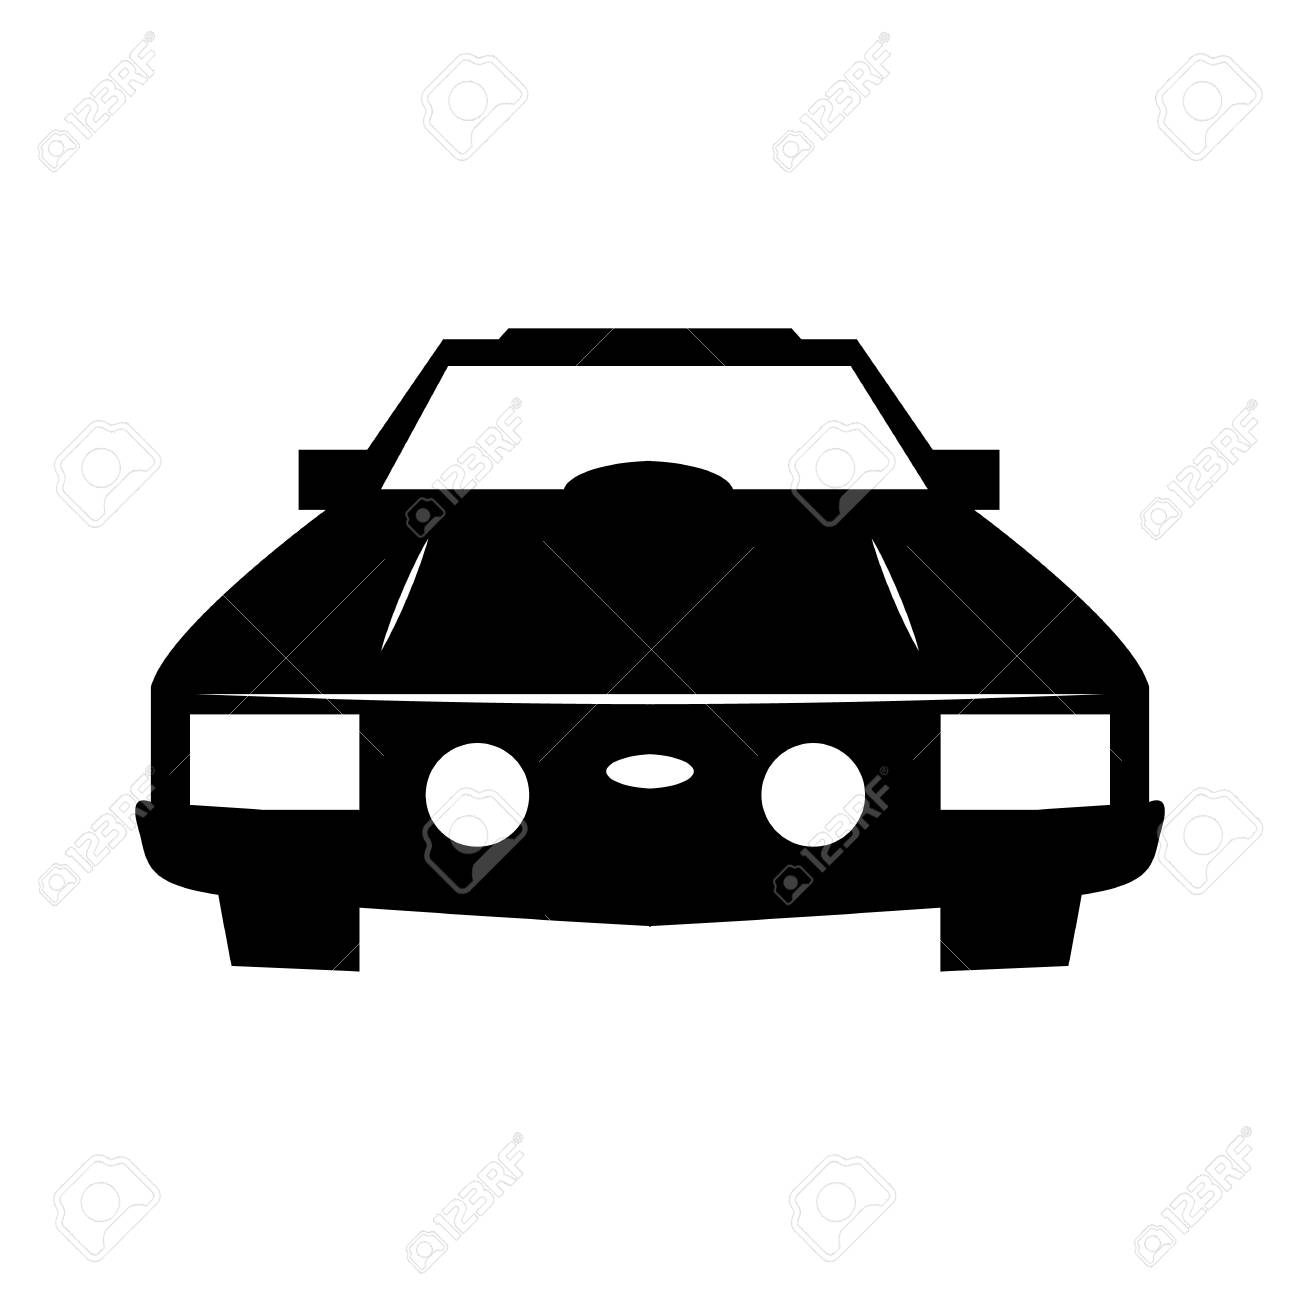 Luxury Car Sedan Or Performance Car Front View Flat Icon For